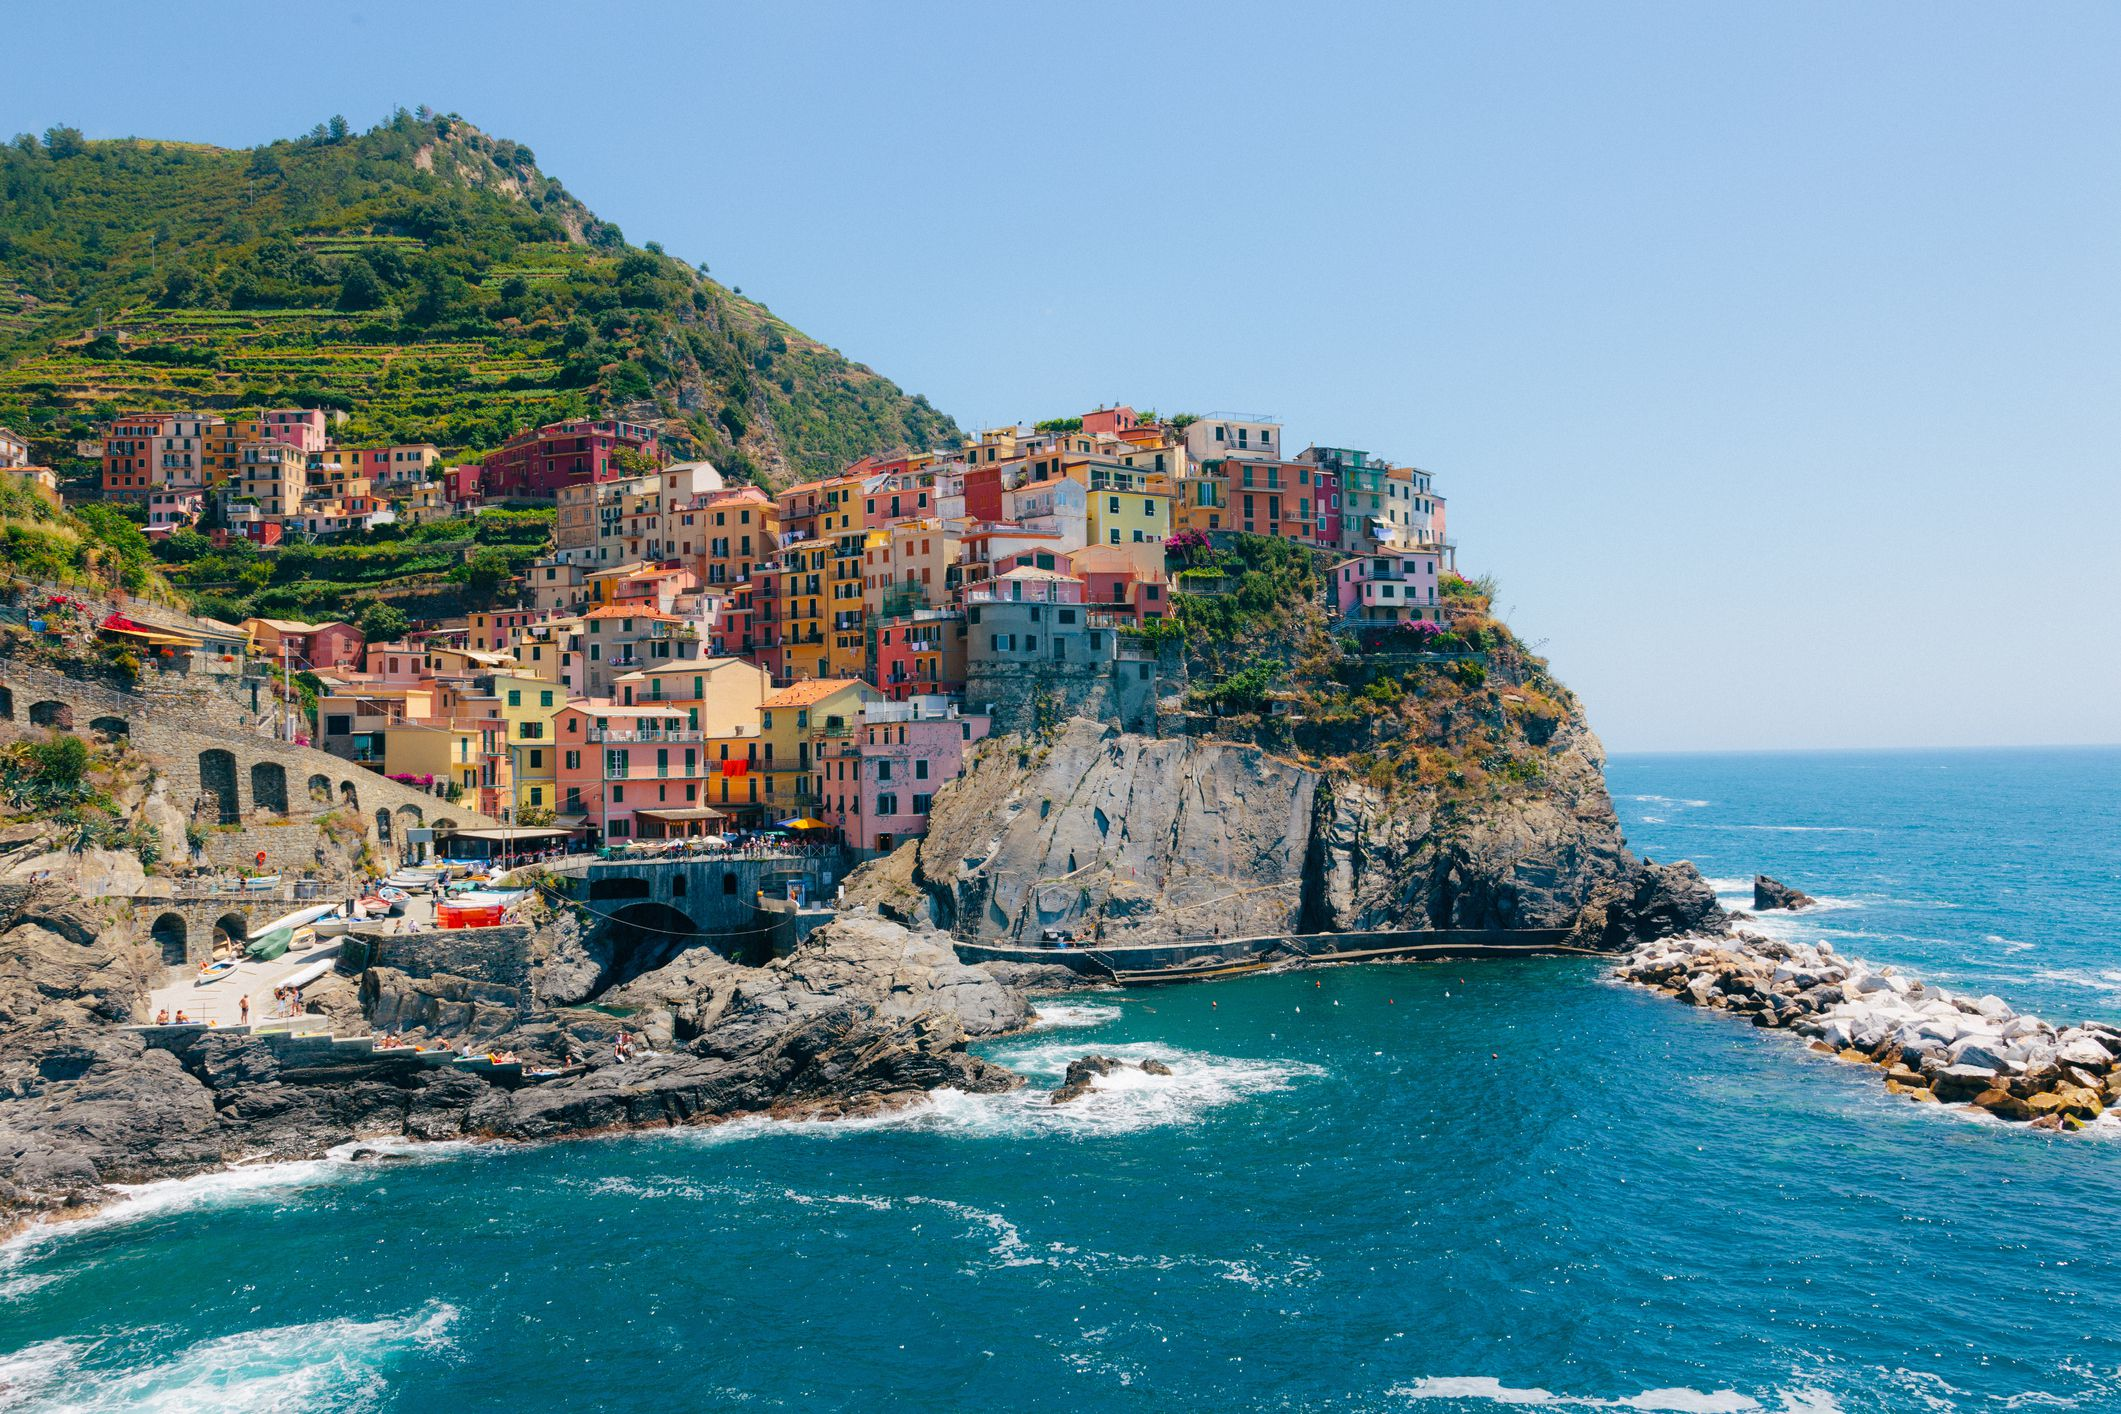 Manarola, Italy: The Complete Guide